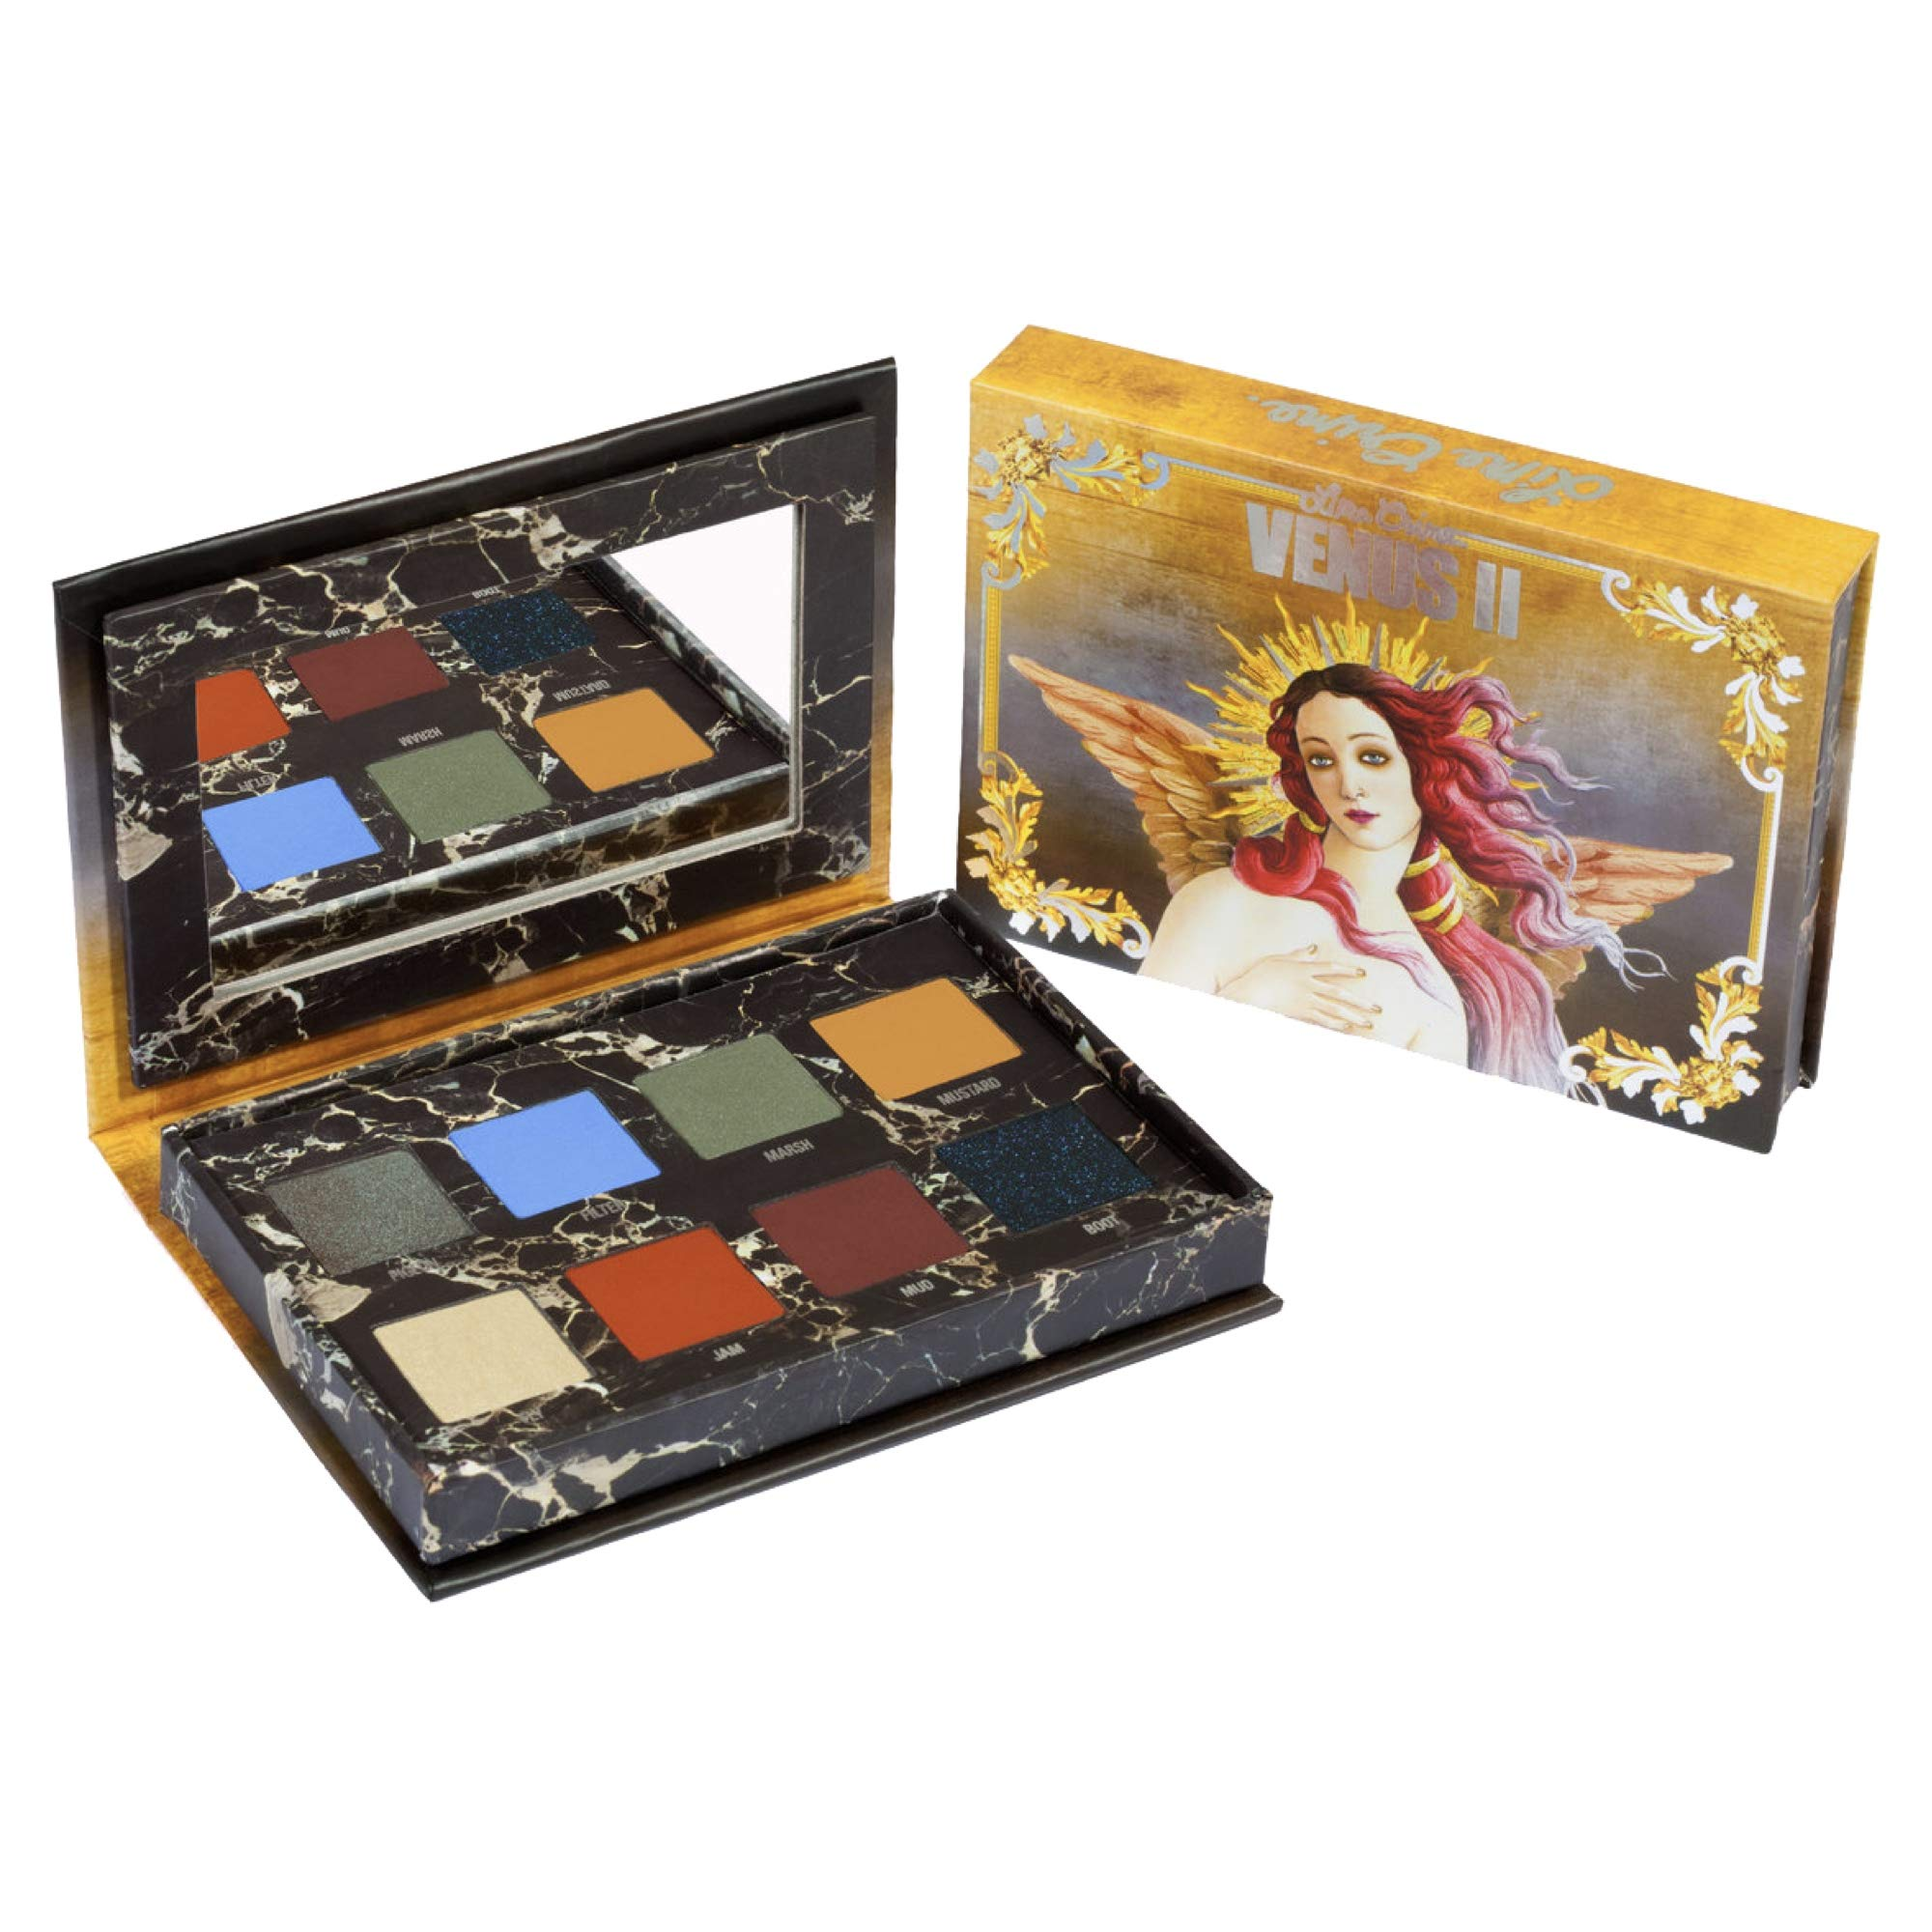 Lime Crime Venus II Eyeshadow Palette - 8 Full Sized Matte and Pearl Eyeshadows - Rich, Boldly Pigmented Shades in a Mix of Cool and Warm Hues - Mirrored Box - Vegan